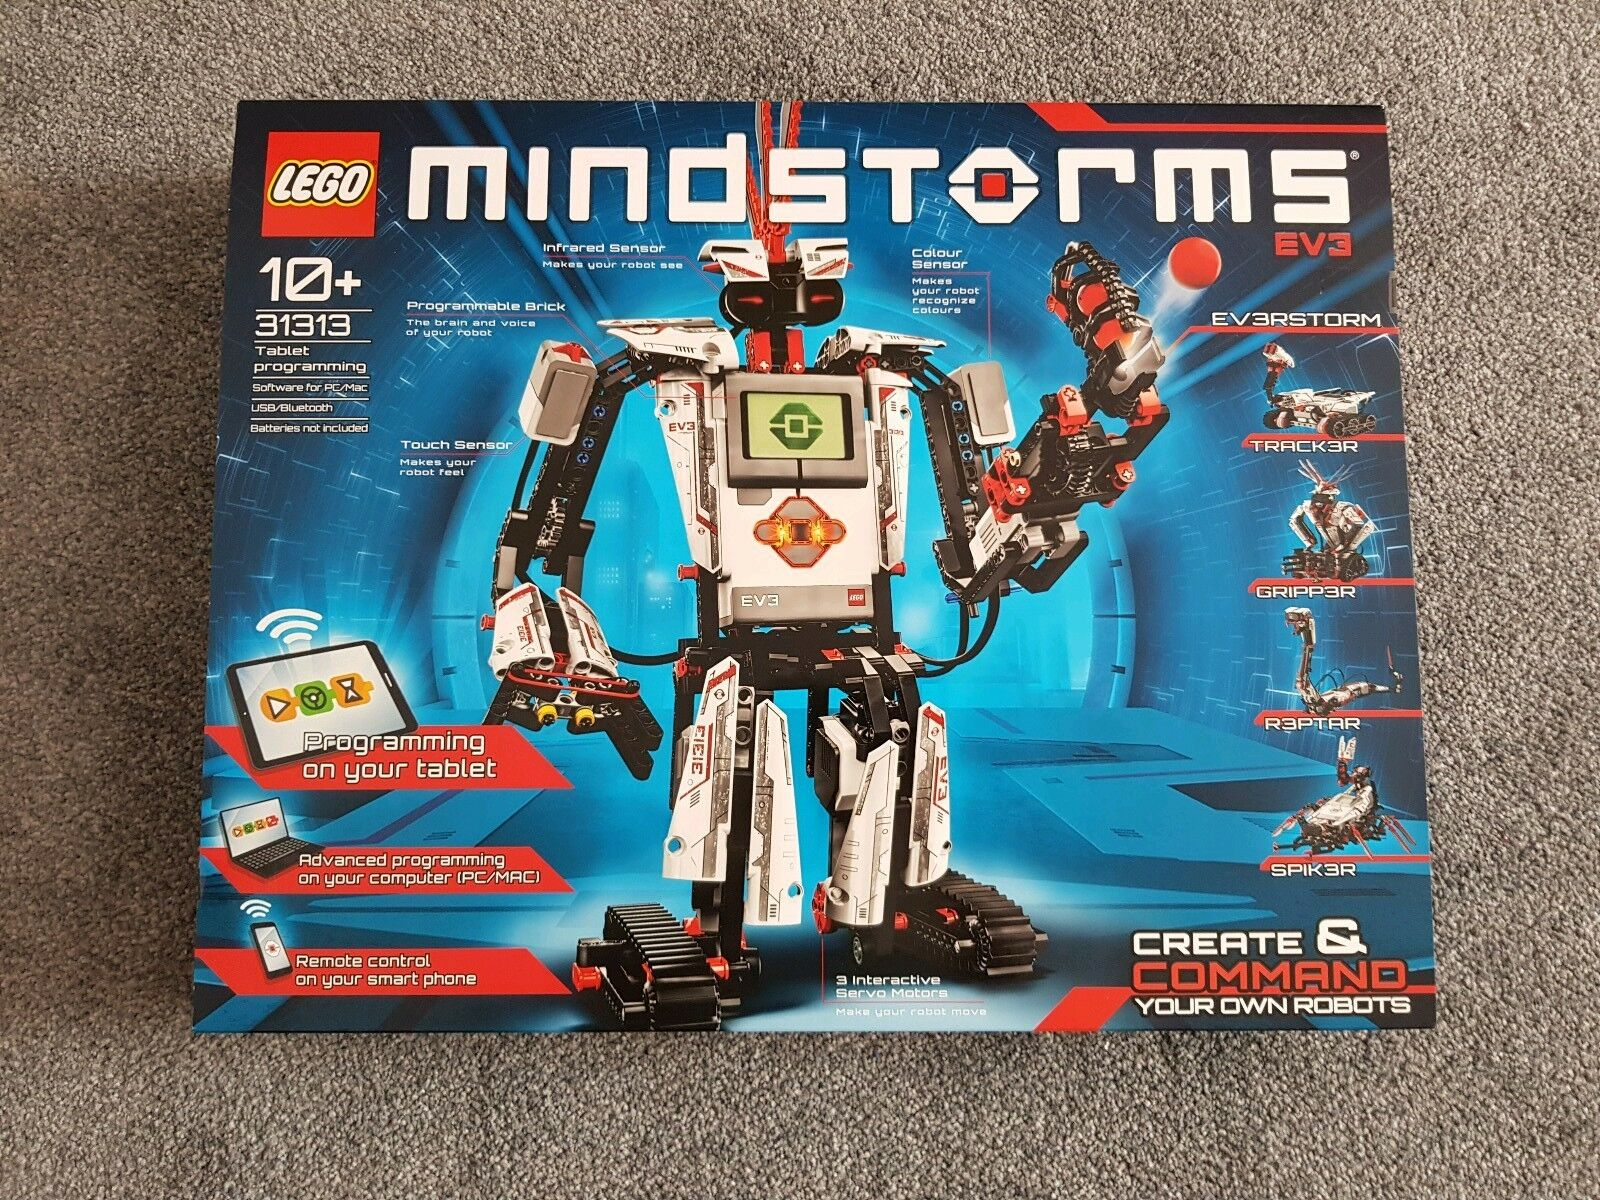 LEGO Mindstorms EV3 (31313) brand new and sealed in original box